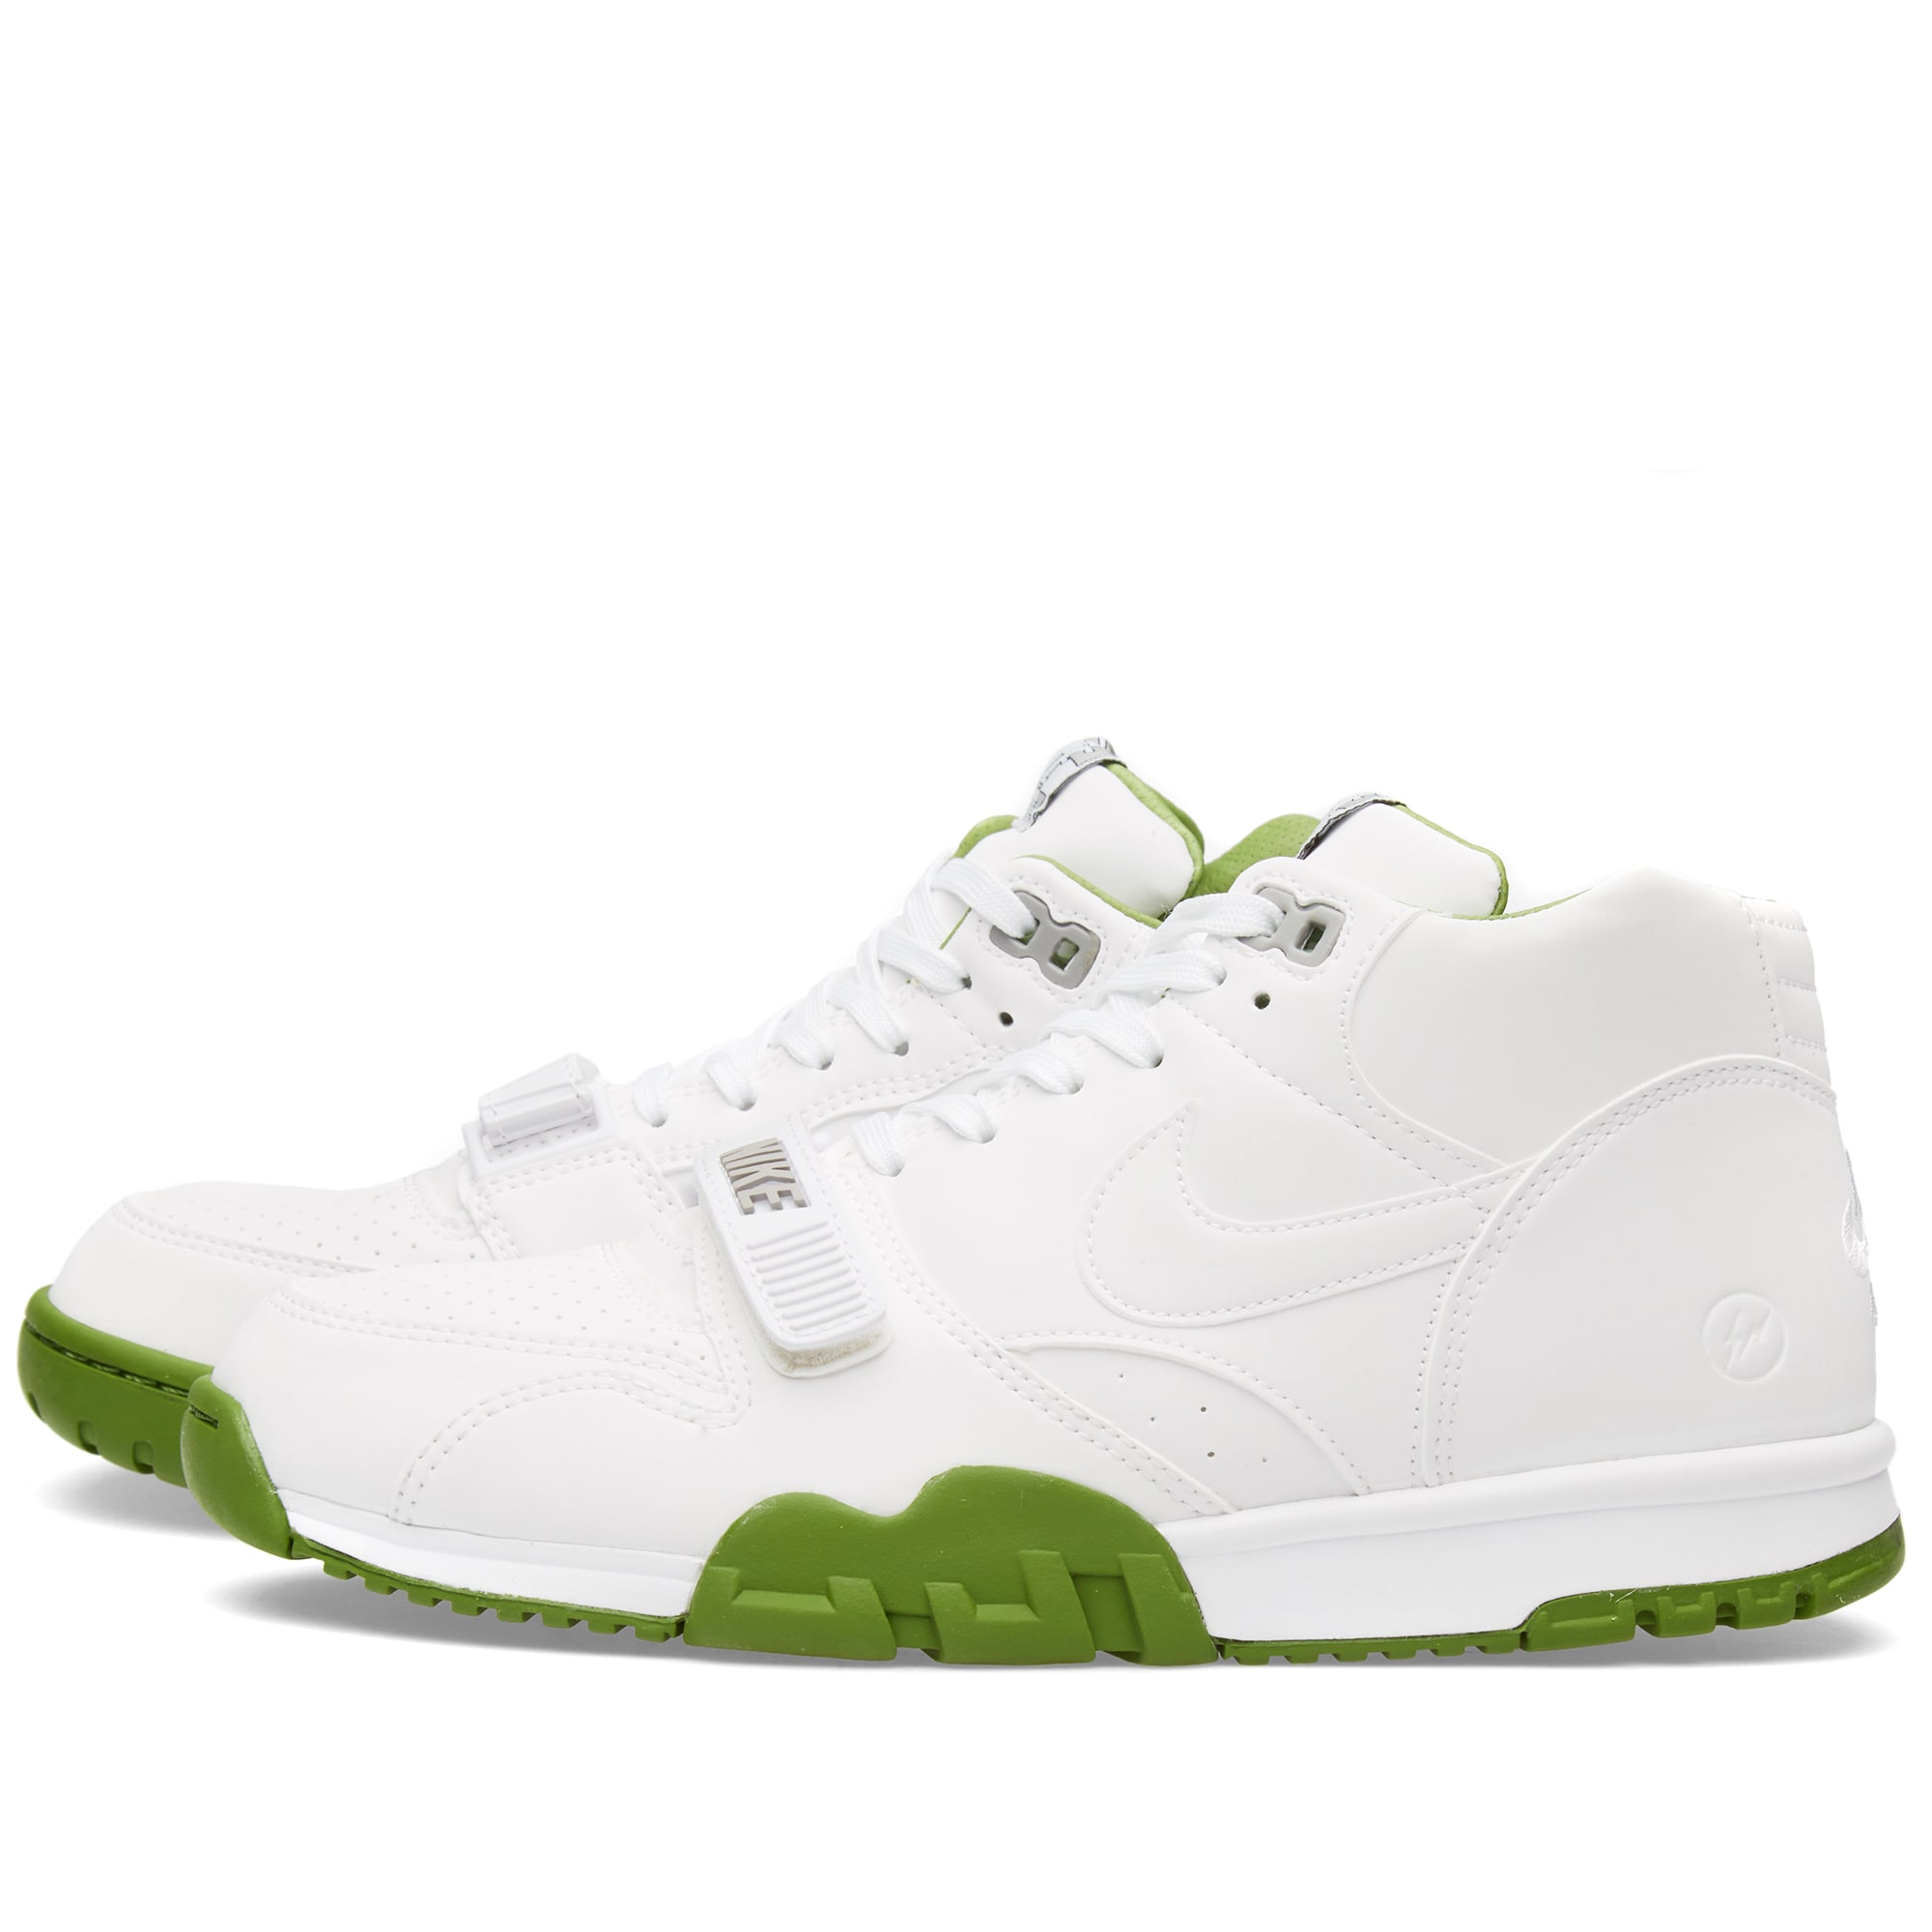 brand new c4c83 06bf7 Nike x Fragment Design Air Trainer 1 Mid SP White & Chlorophyll | END.